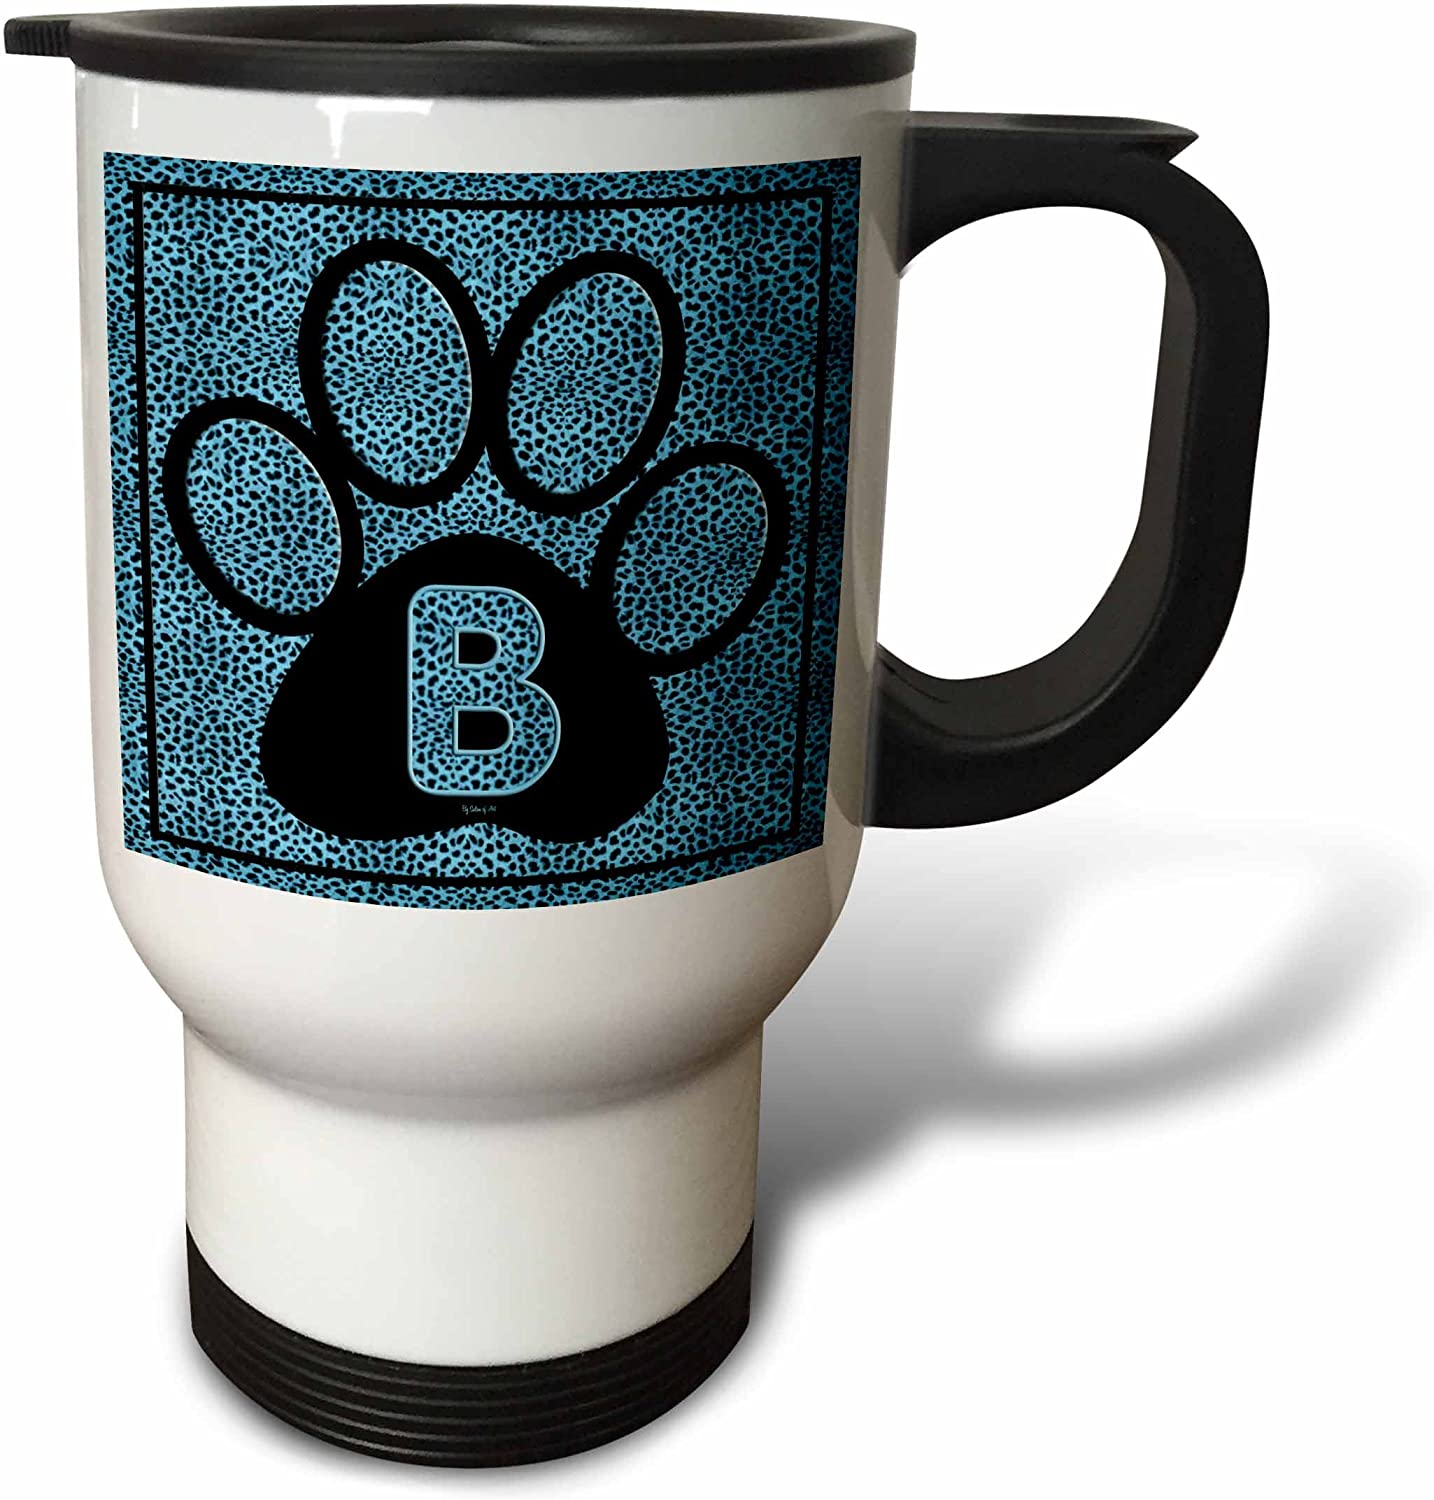 3dRose Letter B Popular popular Blue Cheetah Print 14-Ounce Travel Inventory cleanup selling sale Paw Cat Mug